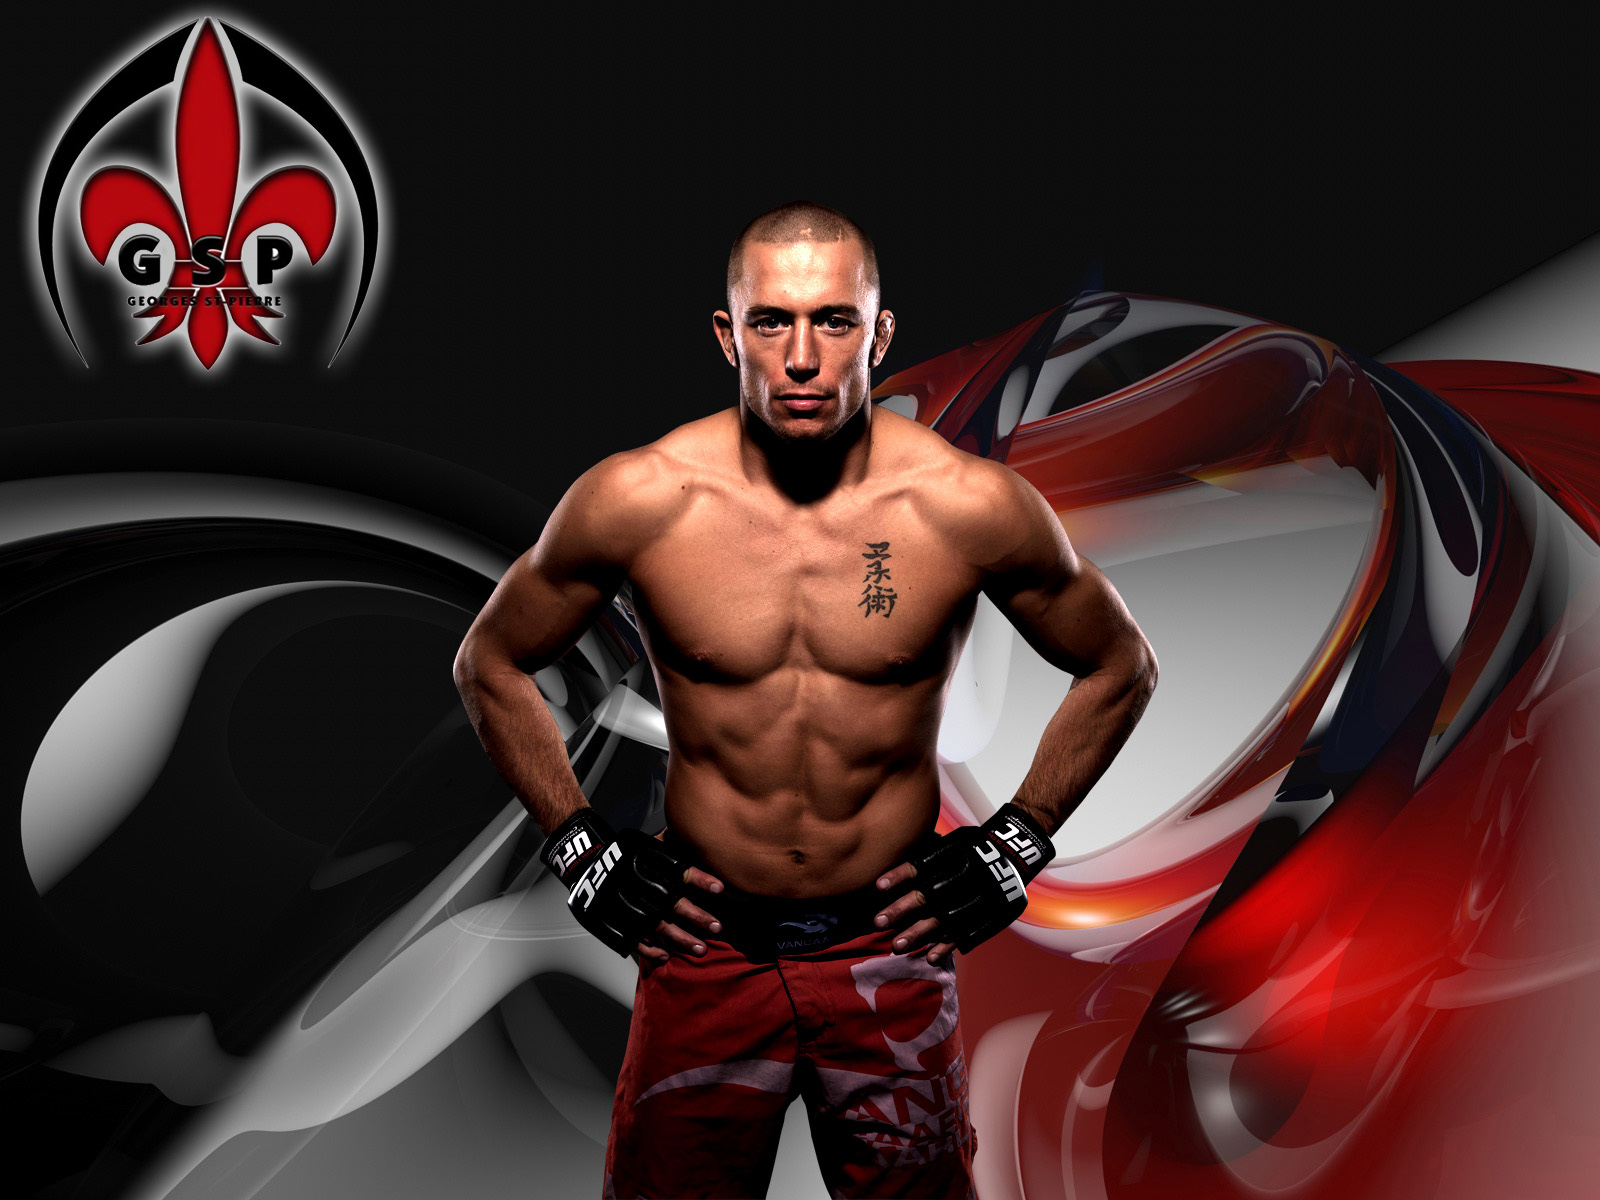 http://2.bp.blogspot.com/-7gWrI9Q5t7U/T8qfPfhXOlI/AAAAAAAAAEE/TN3tzoVSNLI/s1600/gsp+george+st+pierre+ufc+ultimate+fighting+championship+mma+mixed+martial+arts+wallpaper+background.jpg